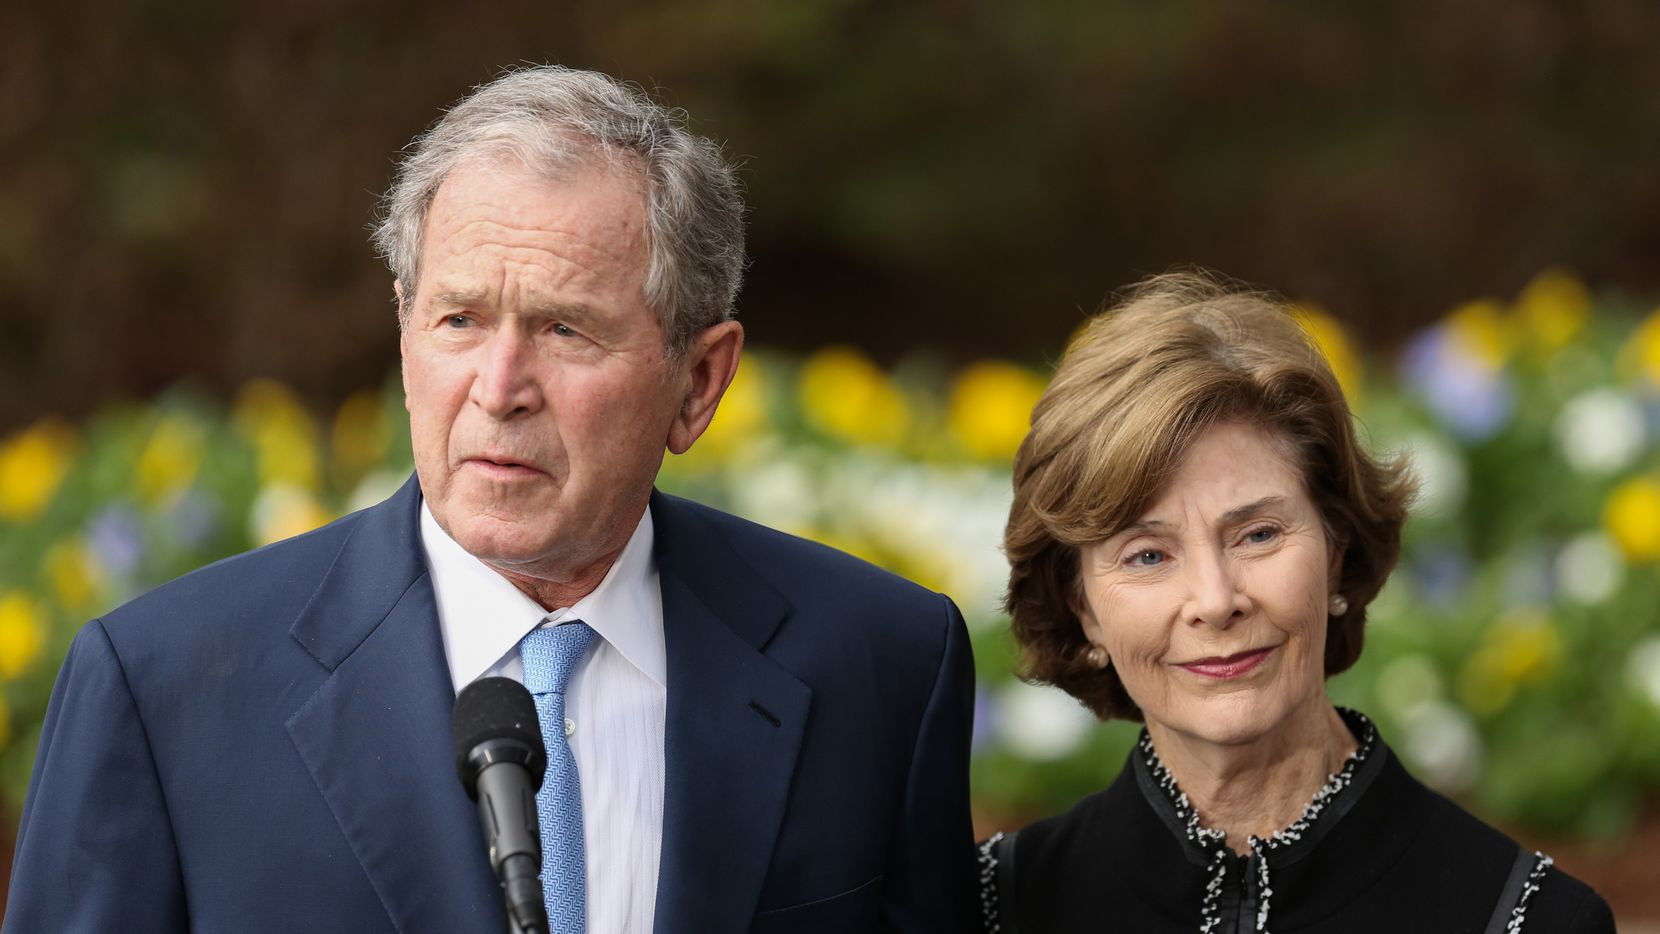 Former President George W. Bush and his wife, Laura, will attend President-elect Joe Biden's inauguration later this month.